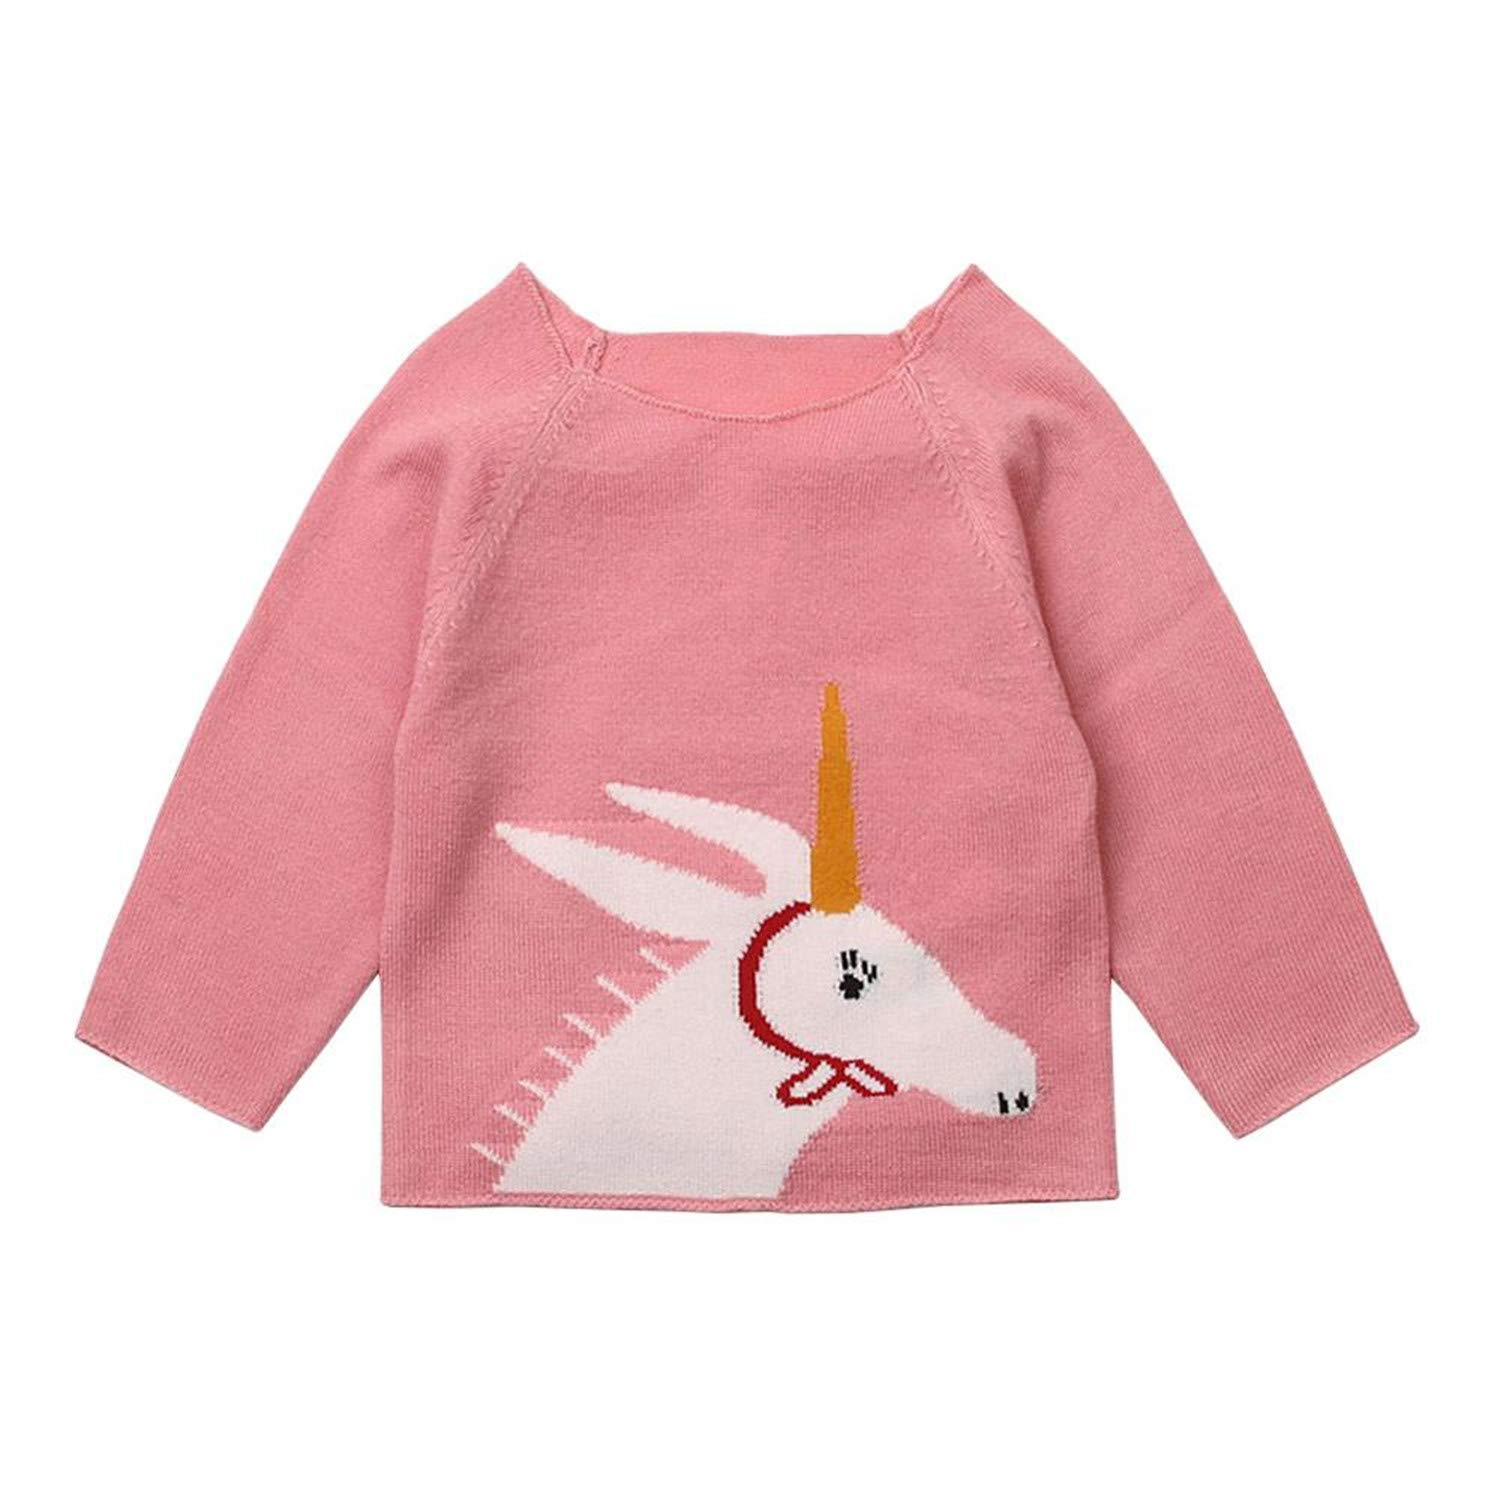 Gail Jonson Summer Outerwear Baby Girls Cardigan Sweaters Casual Long Sleeve Toddler Boys Pullovers Pink 5T